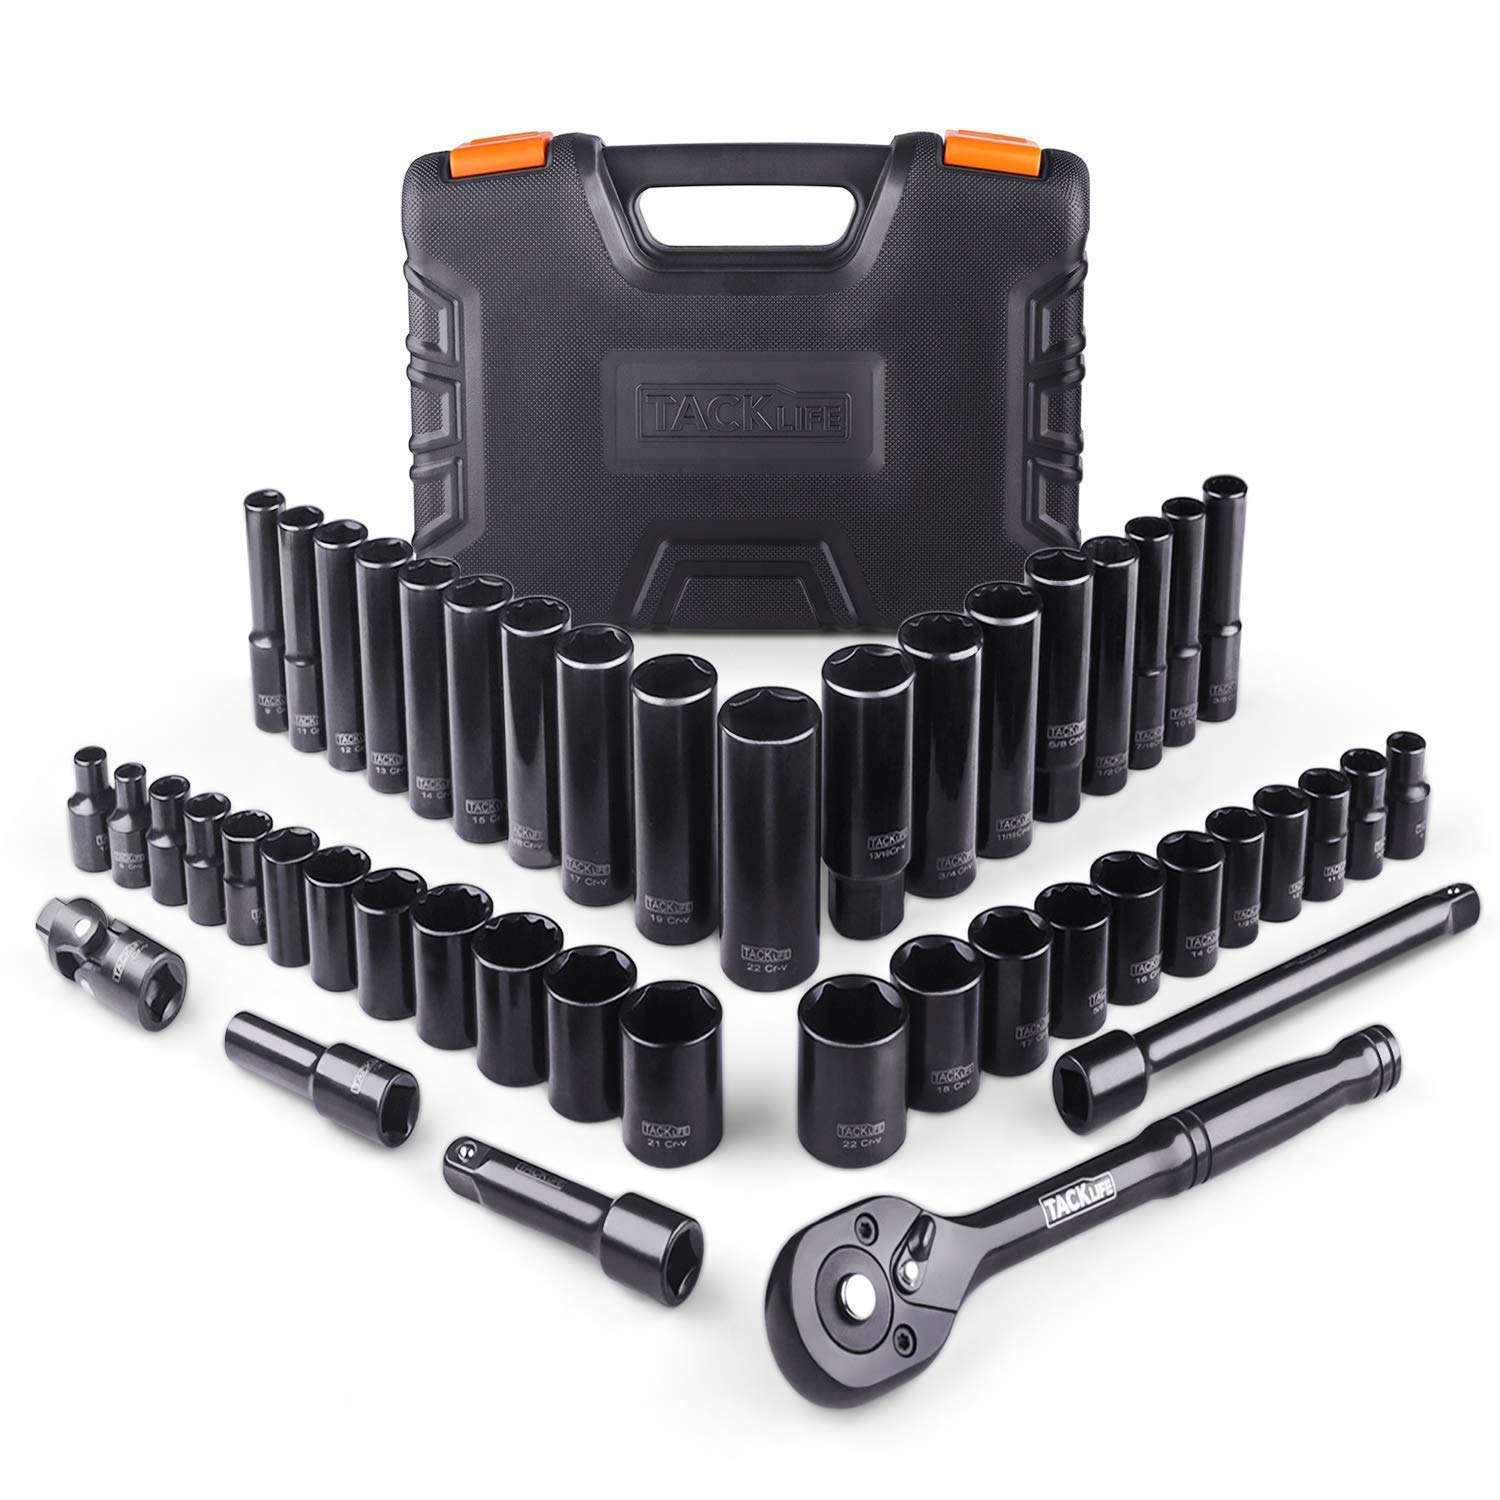 TACKLIFE 46pcs 3/8'' Drive Socket Set, 72-Teeth Ratchet With Metric & SAE Sockets, Upgraded Accessories - SWS2A